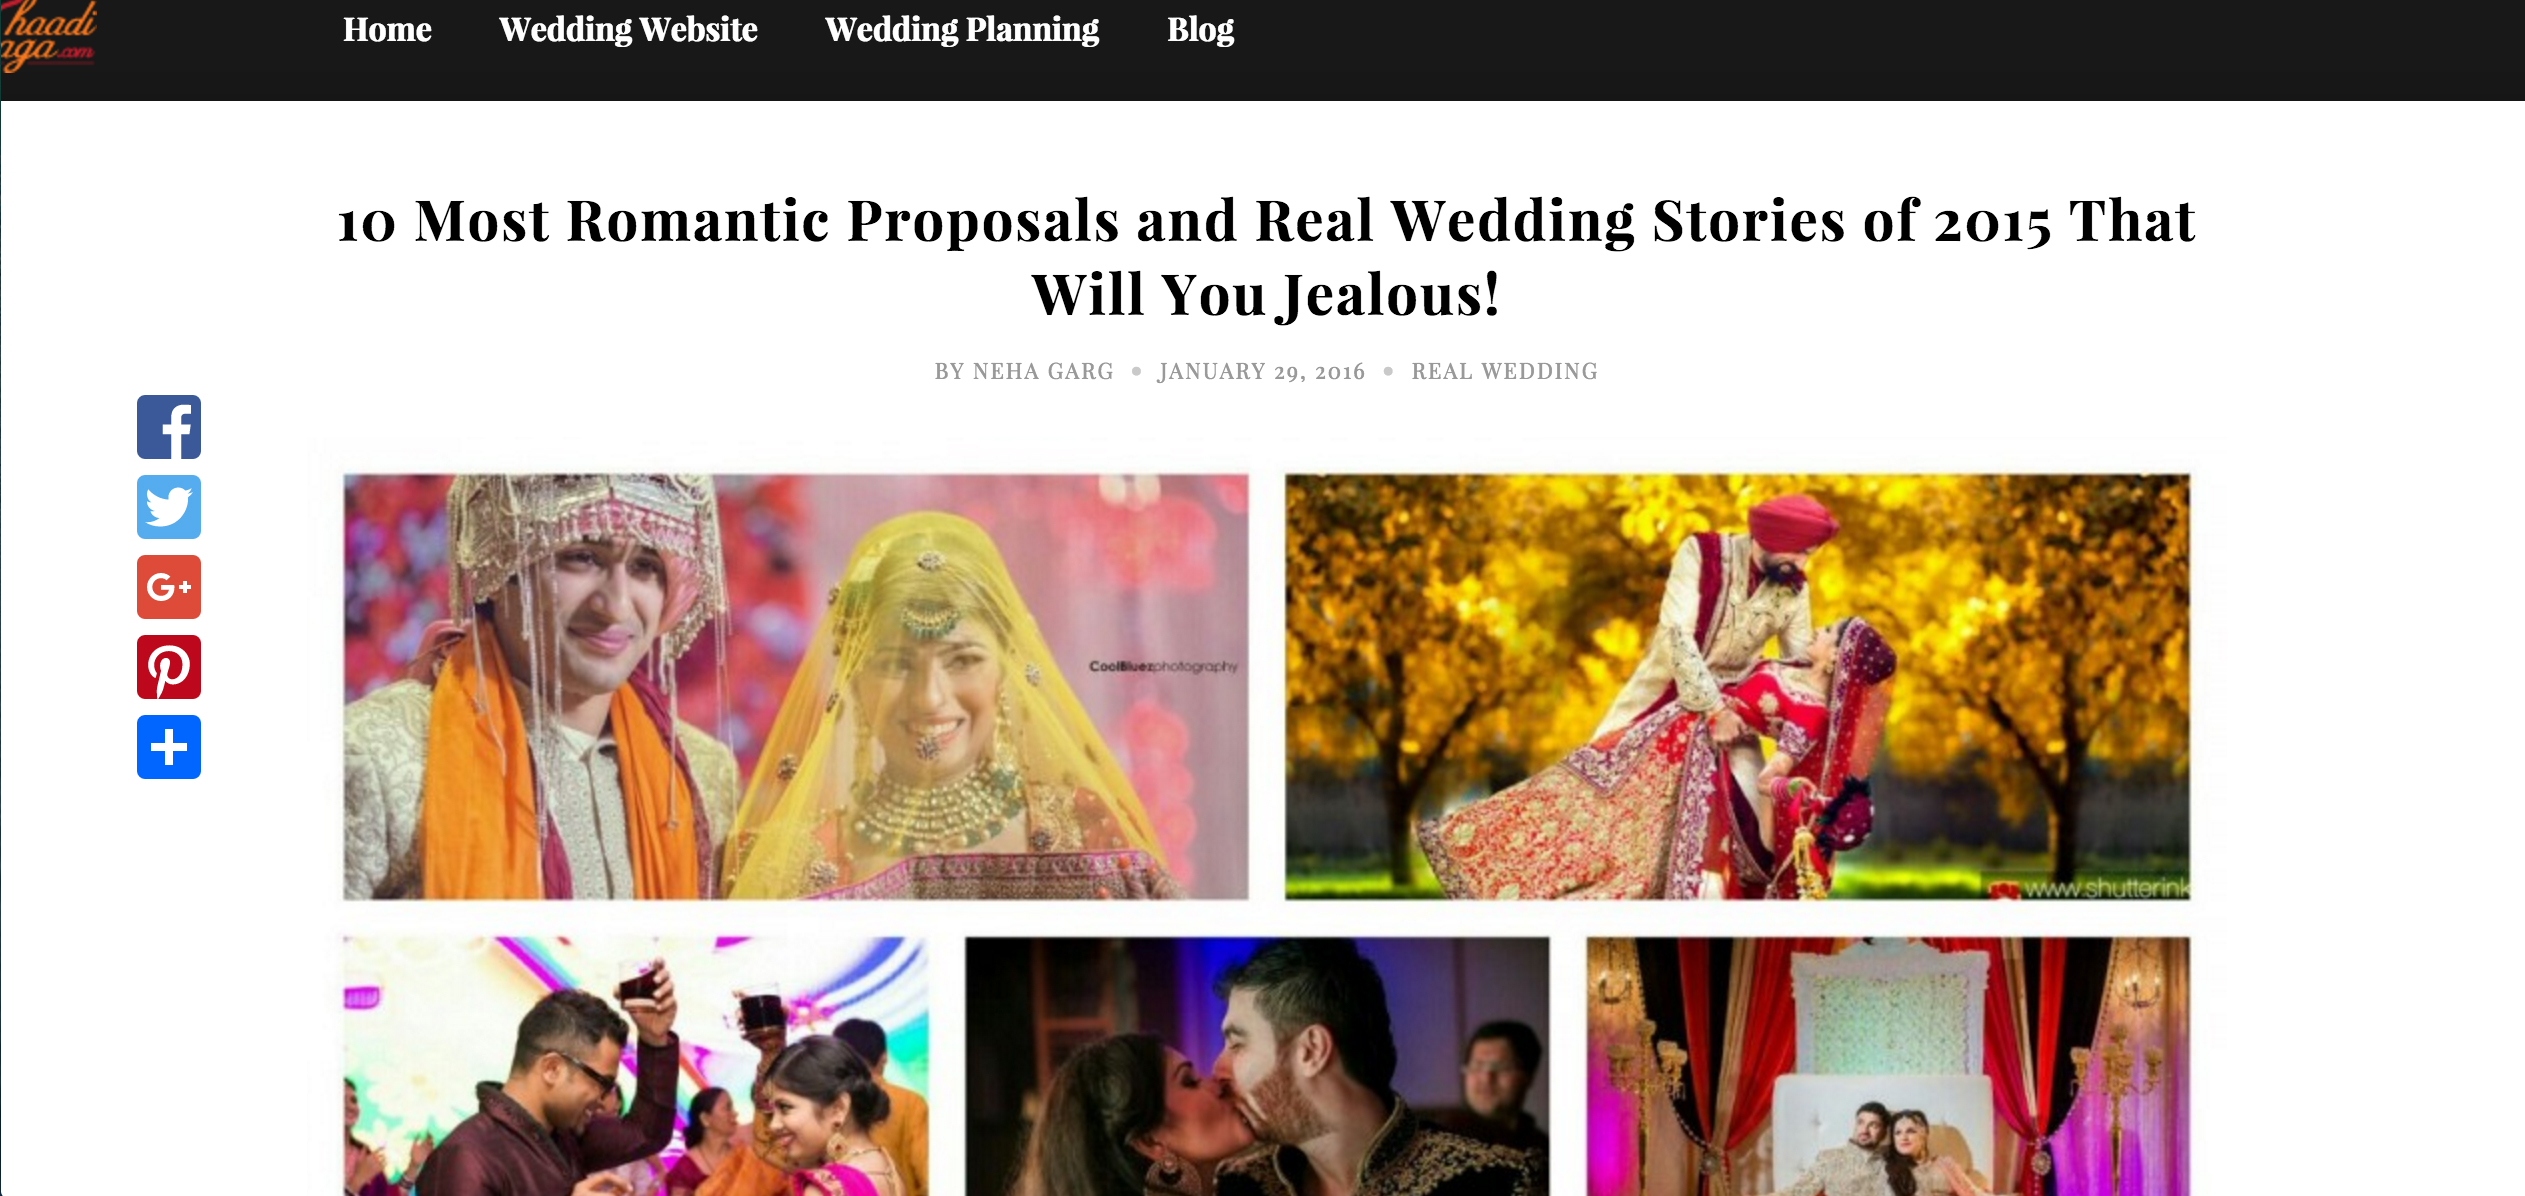 #Featured 10 Most Romantic Proposals and Real Wedding Stories of 2015 That Will You Jealous!